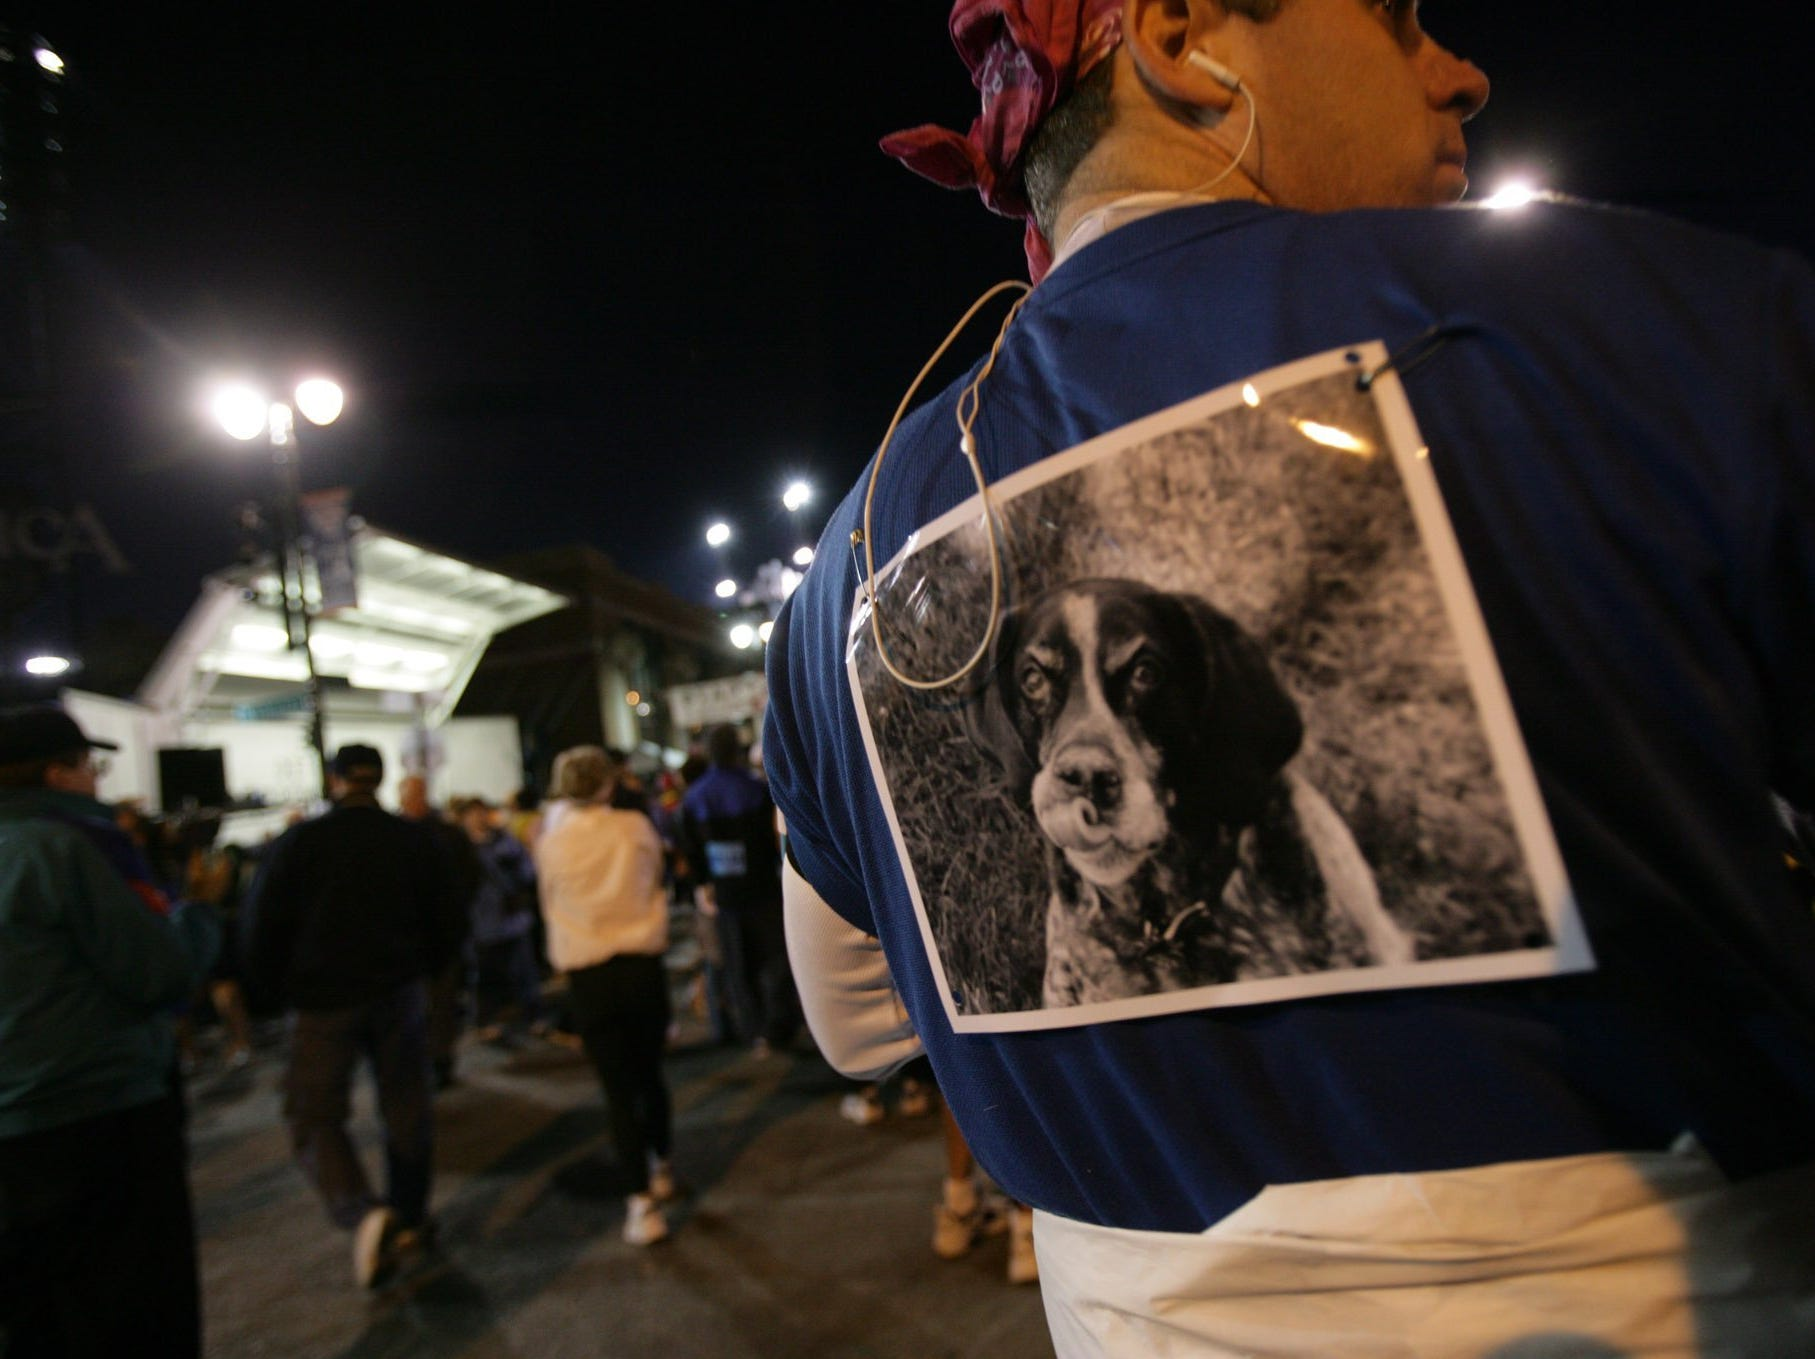 Pat McGlinn, 38, of Berkley, honors his dog Bridget who passed away, by wearing a photo of her during the 28th annual Detroit Free Press/Flagstar Marathon, Sunday, Oct. 23, 2005.